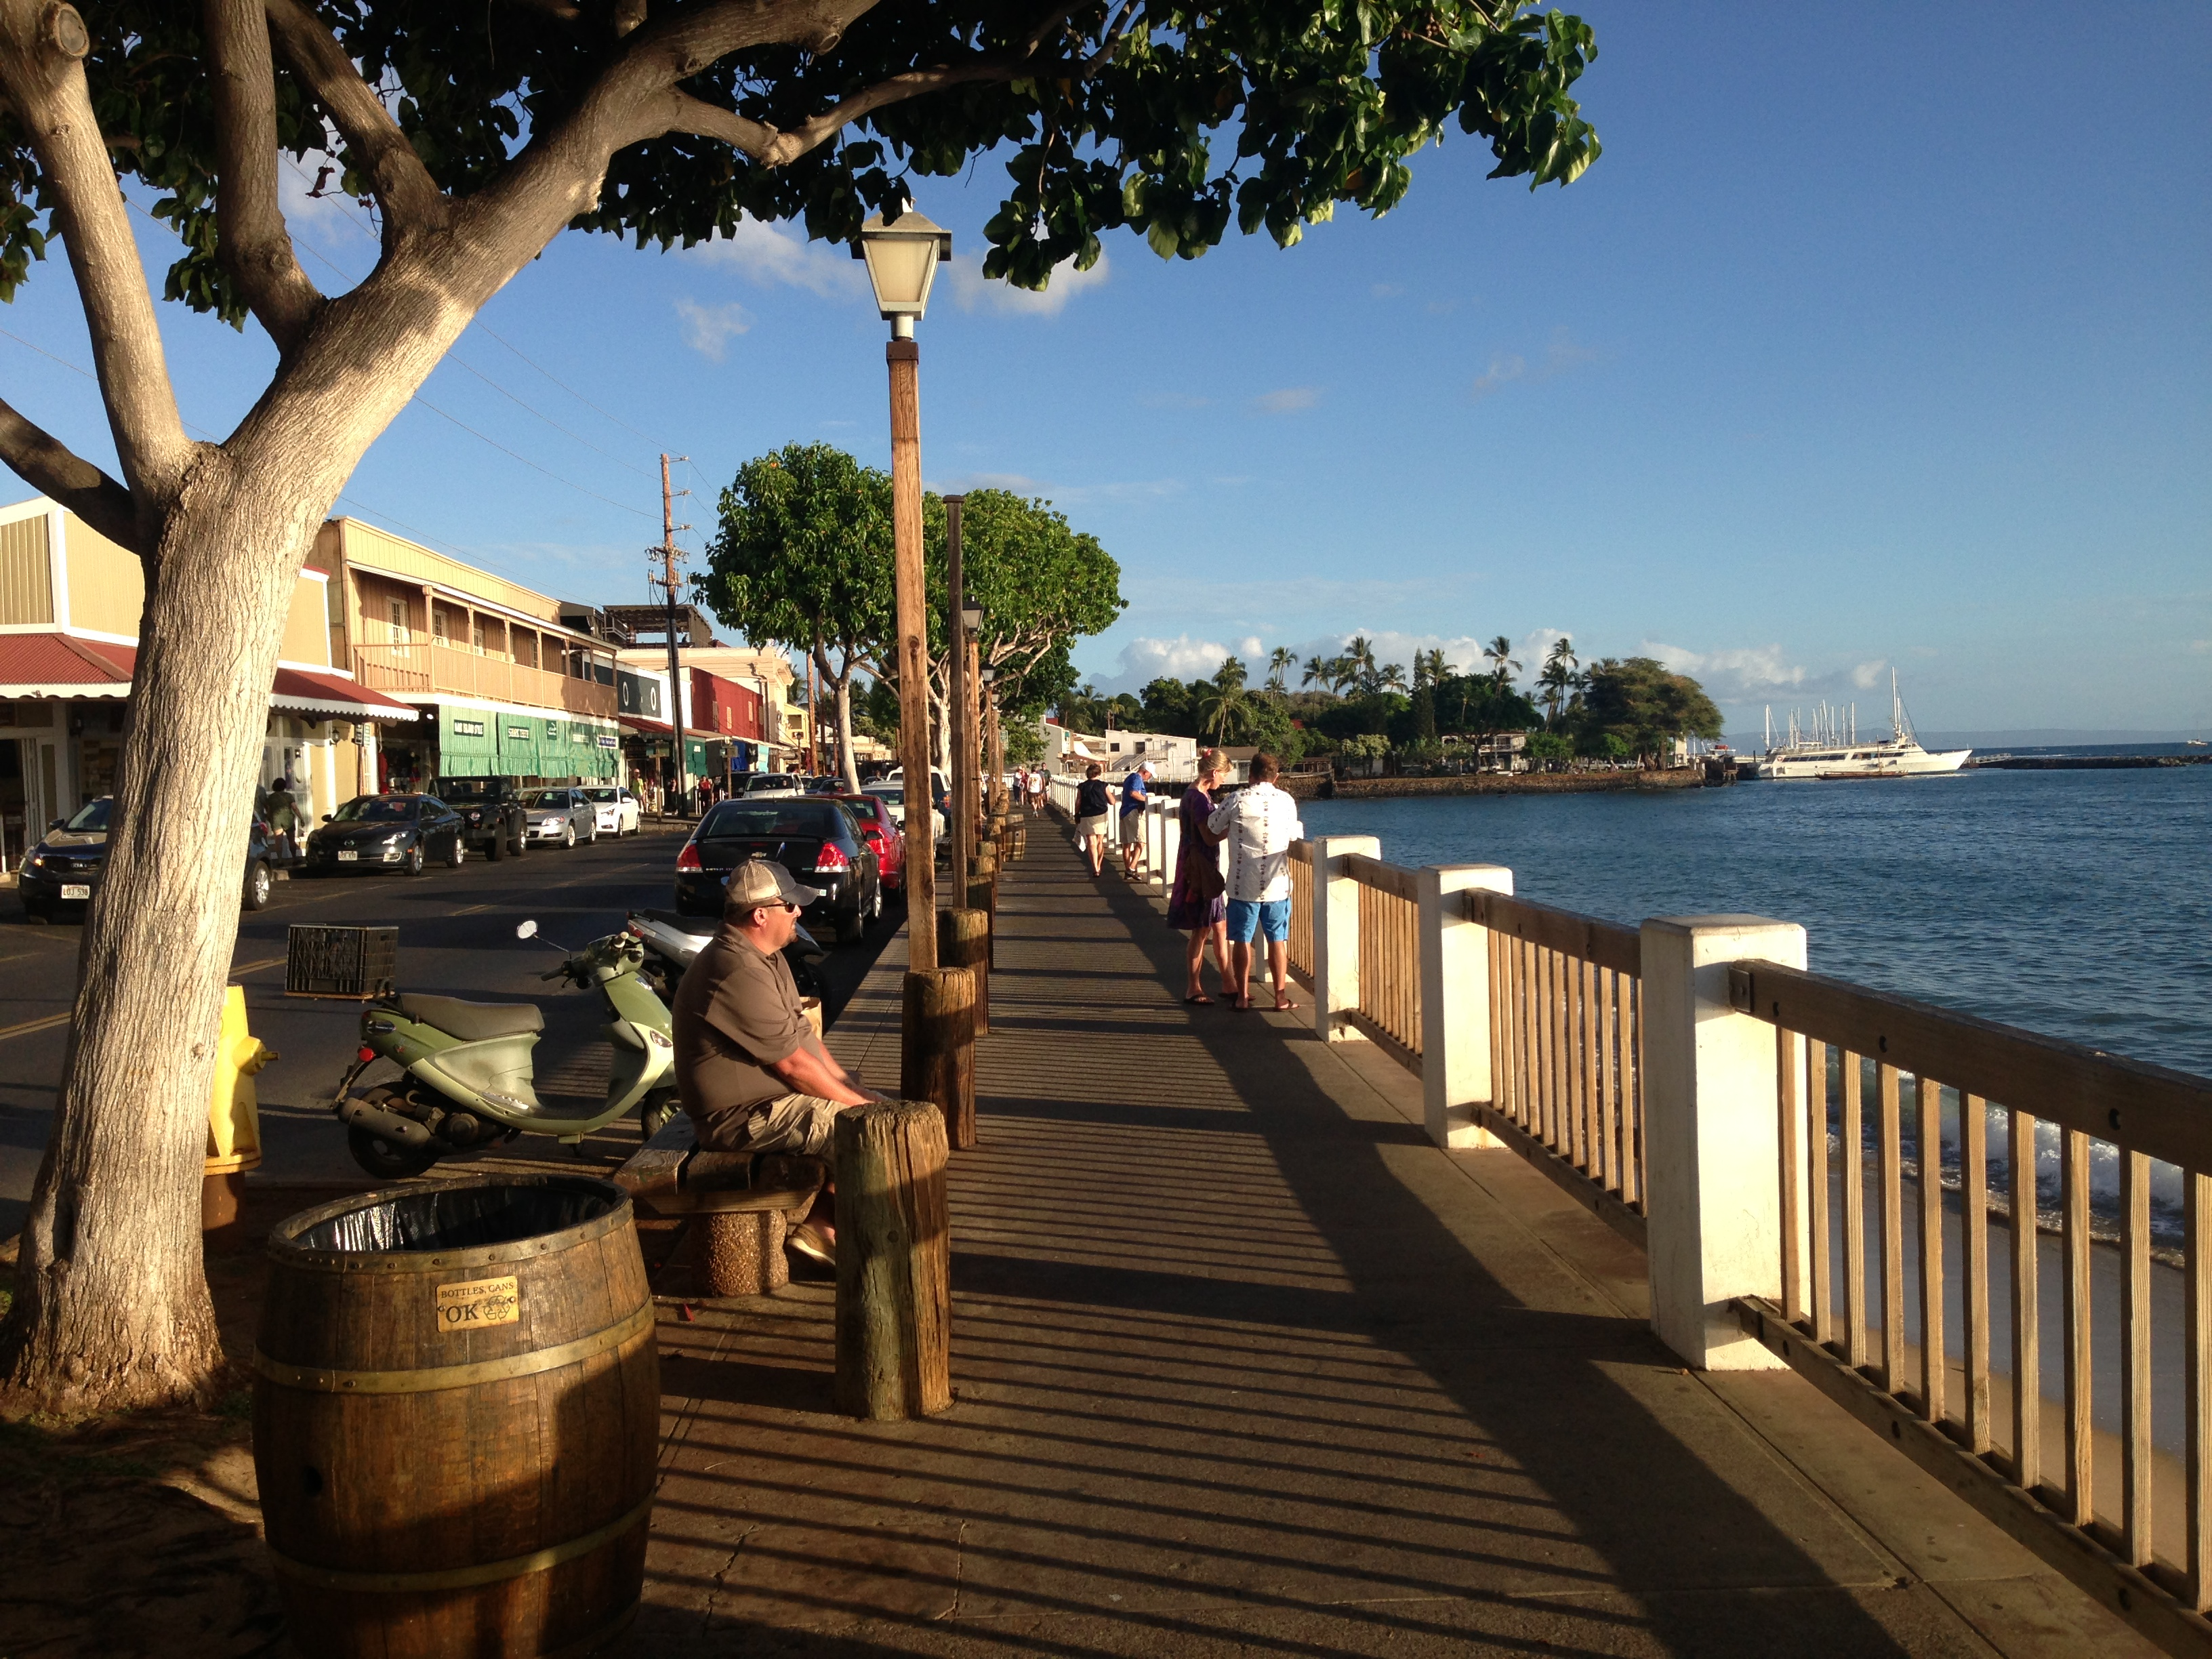 Downtown Lahaina boardwalk